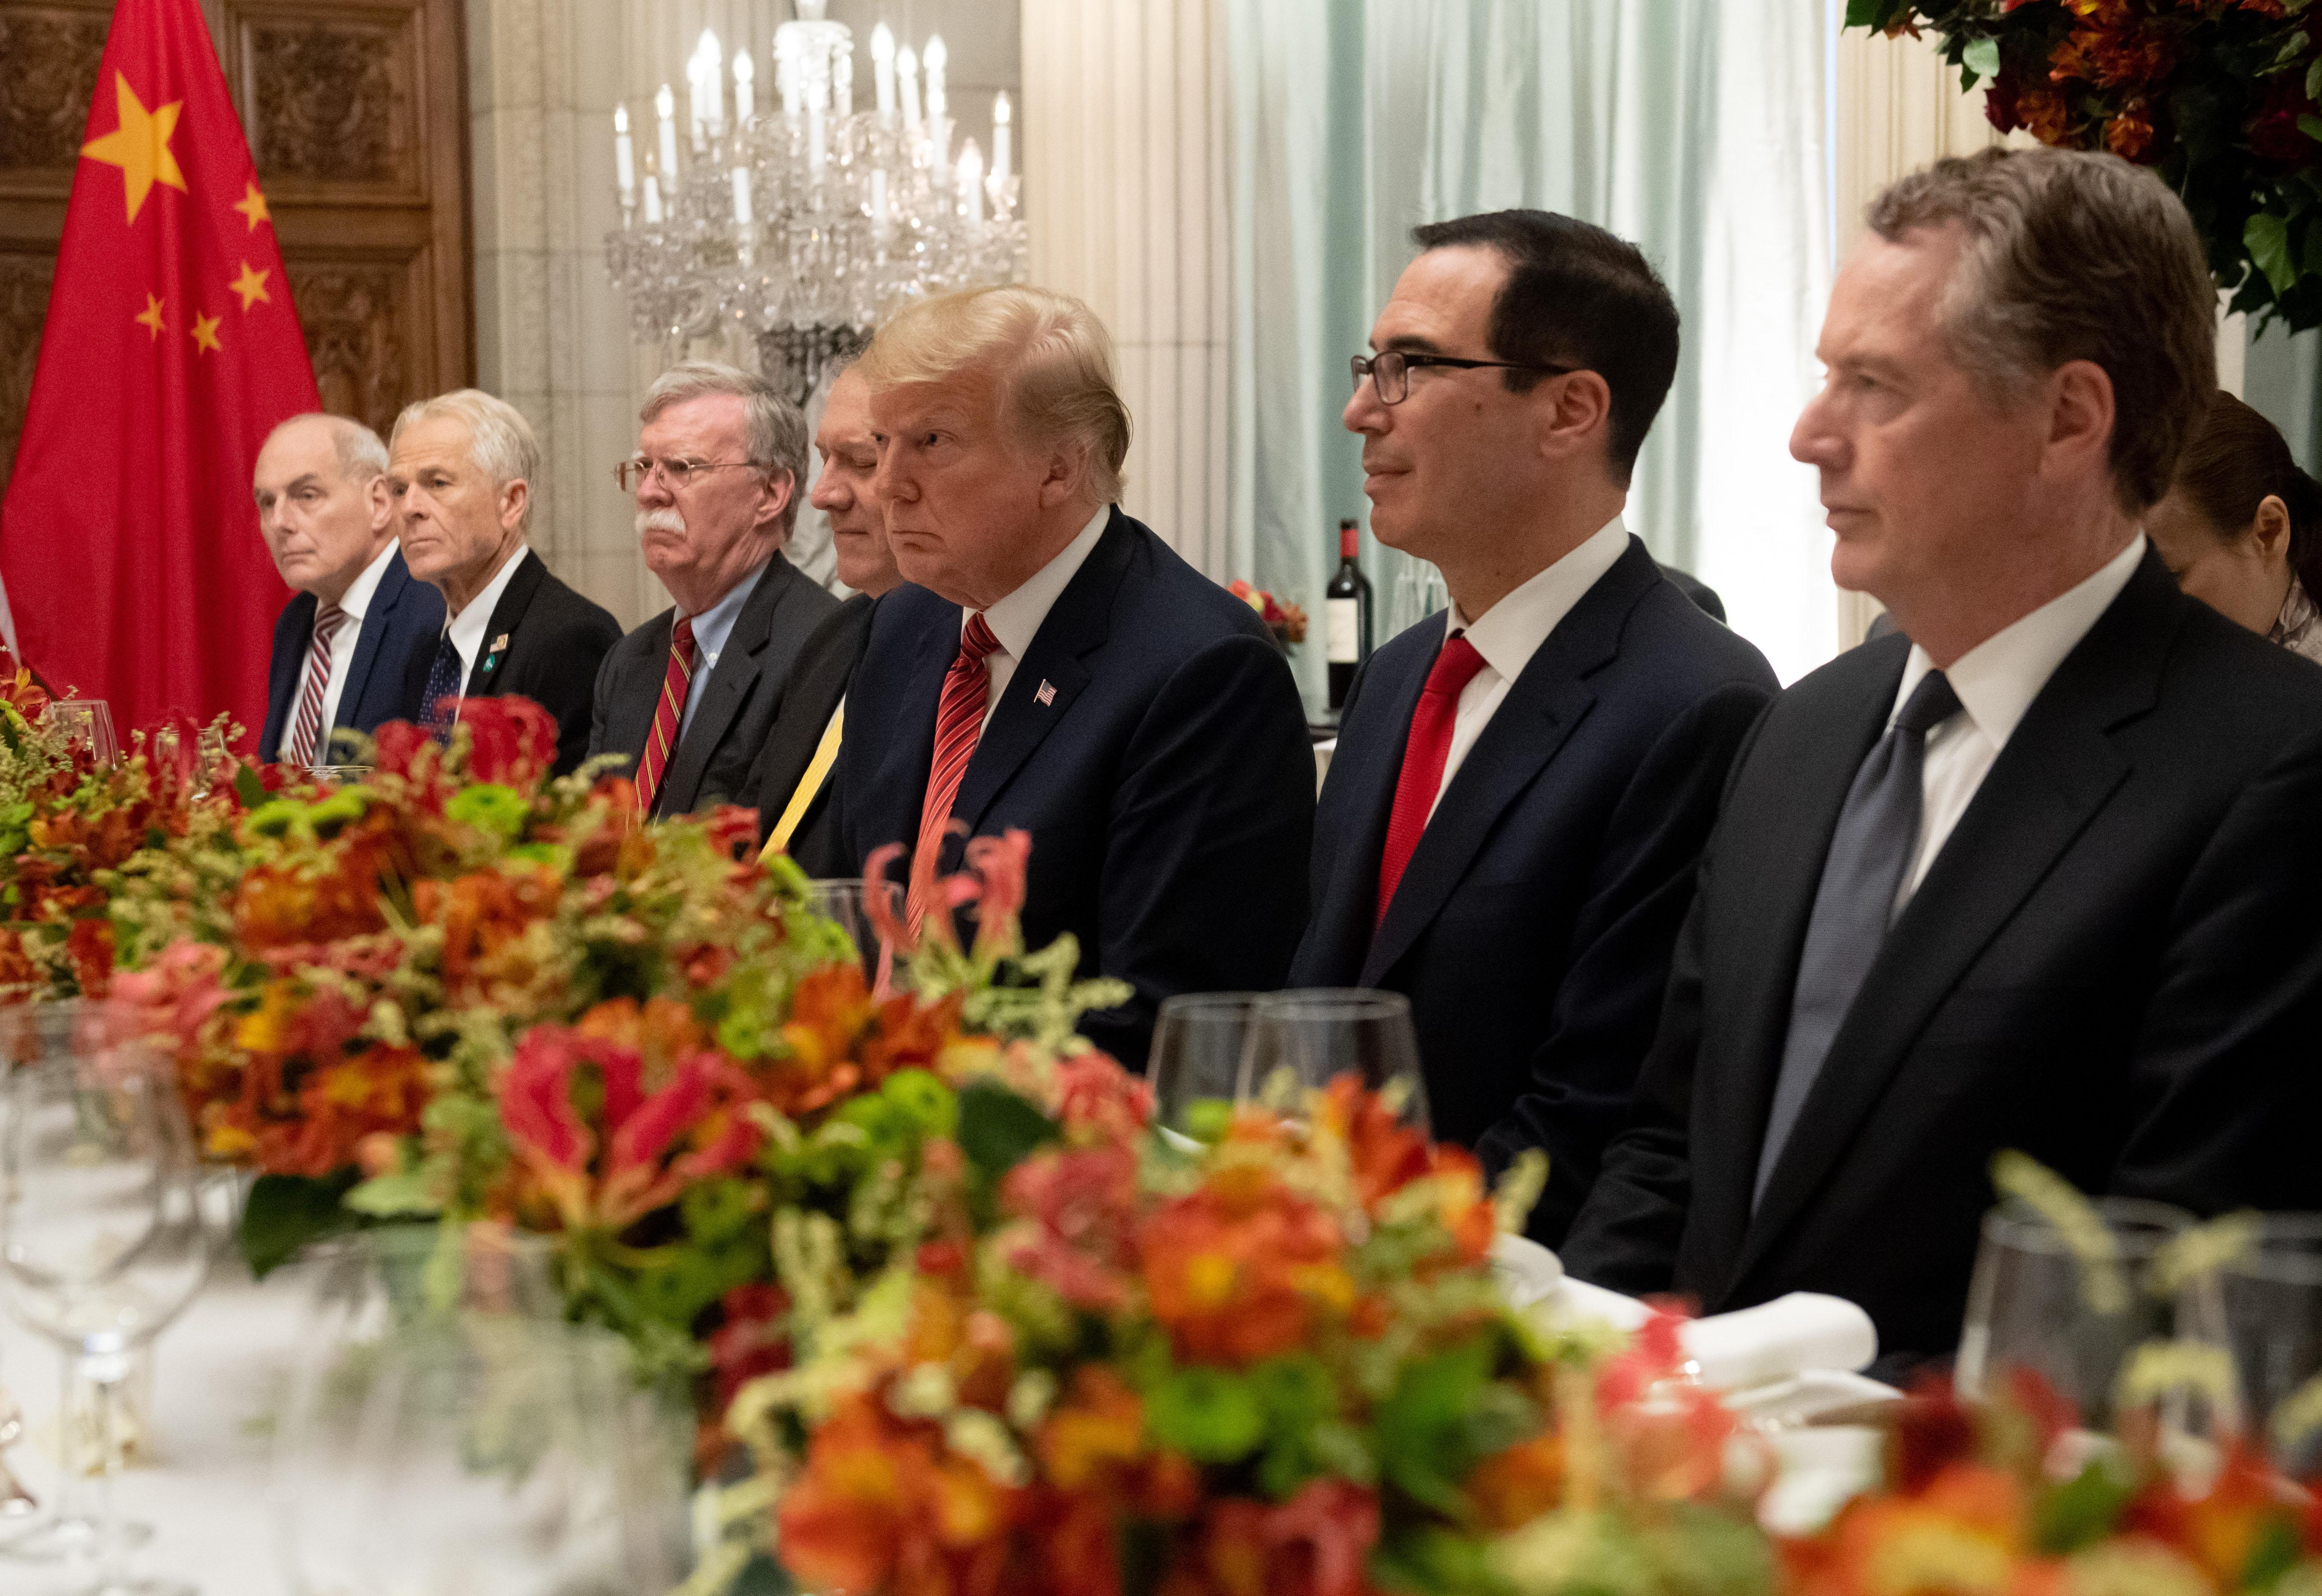 US President Donald Trump (C), US Secretary of the Treasury Steven Mnuchin (2-R), US Trade Representative Robert Lighthizer along with members of their delegation hold a dinner meeting with China's President Xi Jinping (out of frame) at the end of the G20 Leaders' Summit in Buenos Aires, on December 01, 2018. - US President Donald Trump and his Chinese counterpart Xi Jinping had the future of their trade dispute -- and broader rivalry between the world's two top economies -- on the menu at a high-stakes dinner Saturday. (Photo by SAUL LOEB / AFP)        (Photo credit should read SAUL LOEB/AFP/Getty Images)